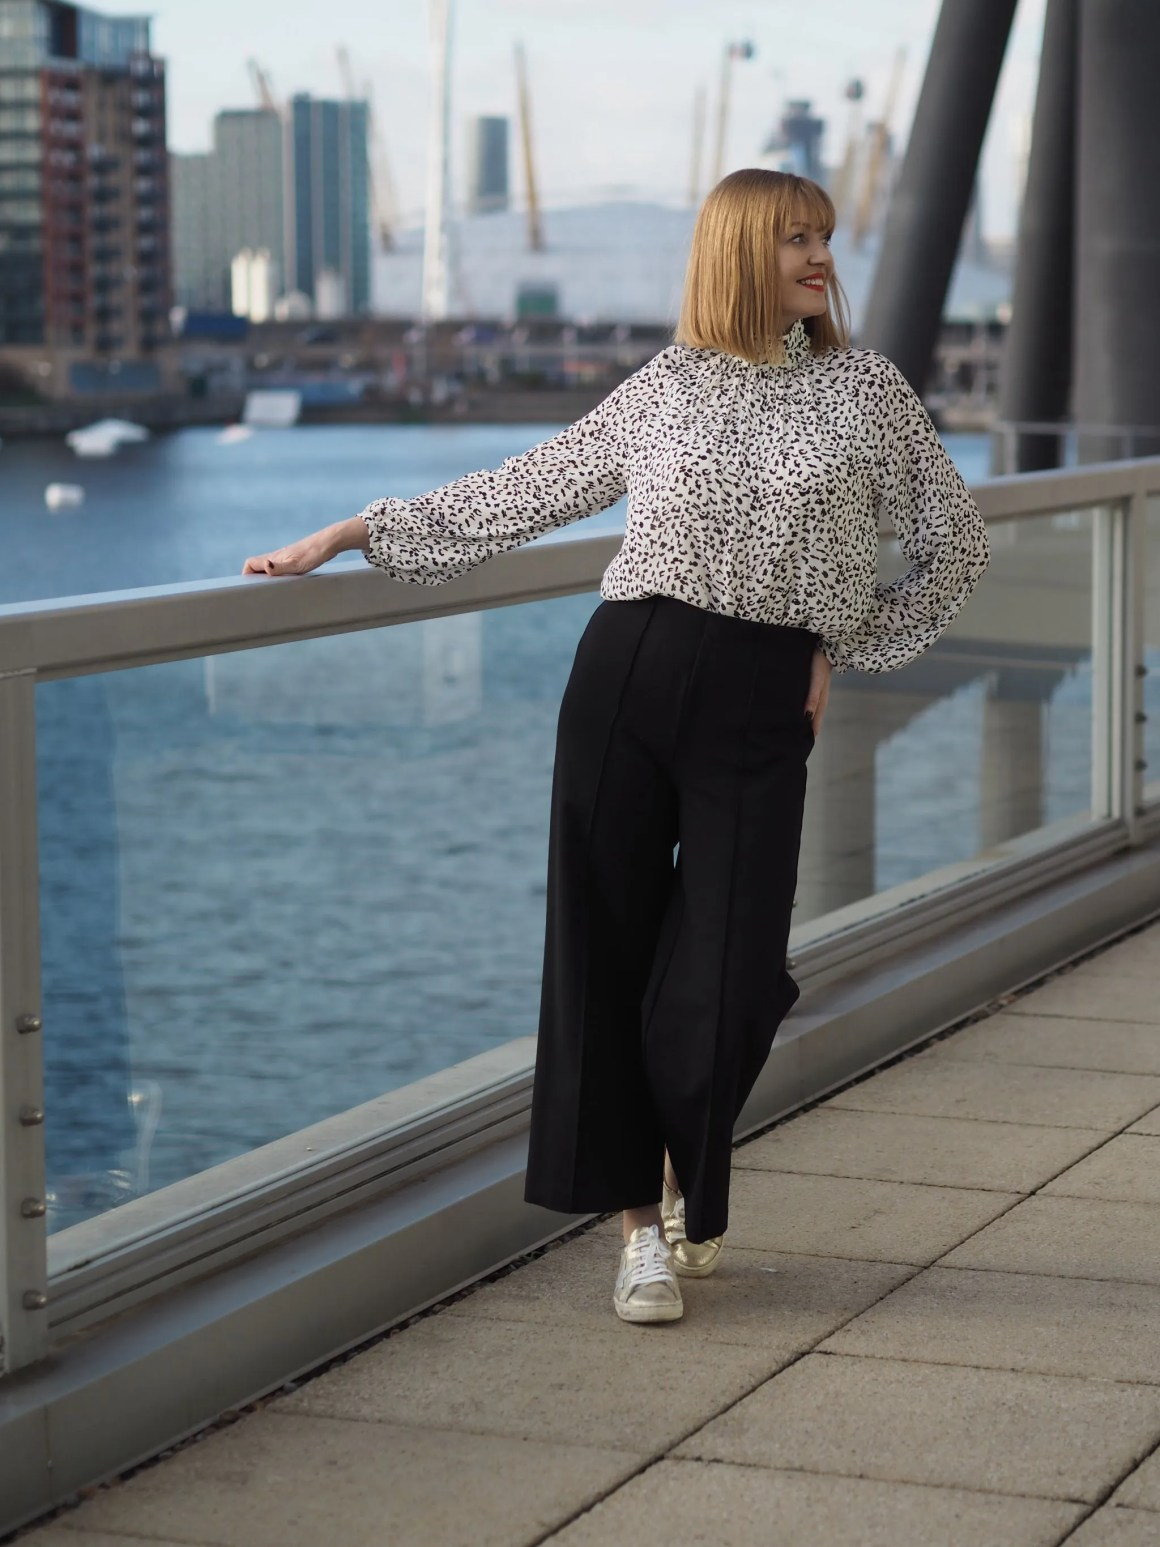 what lizzy loves wears snow leopard print top with black ponte trousers in business and pleasure outfit